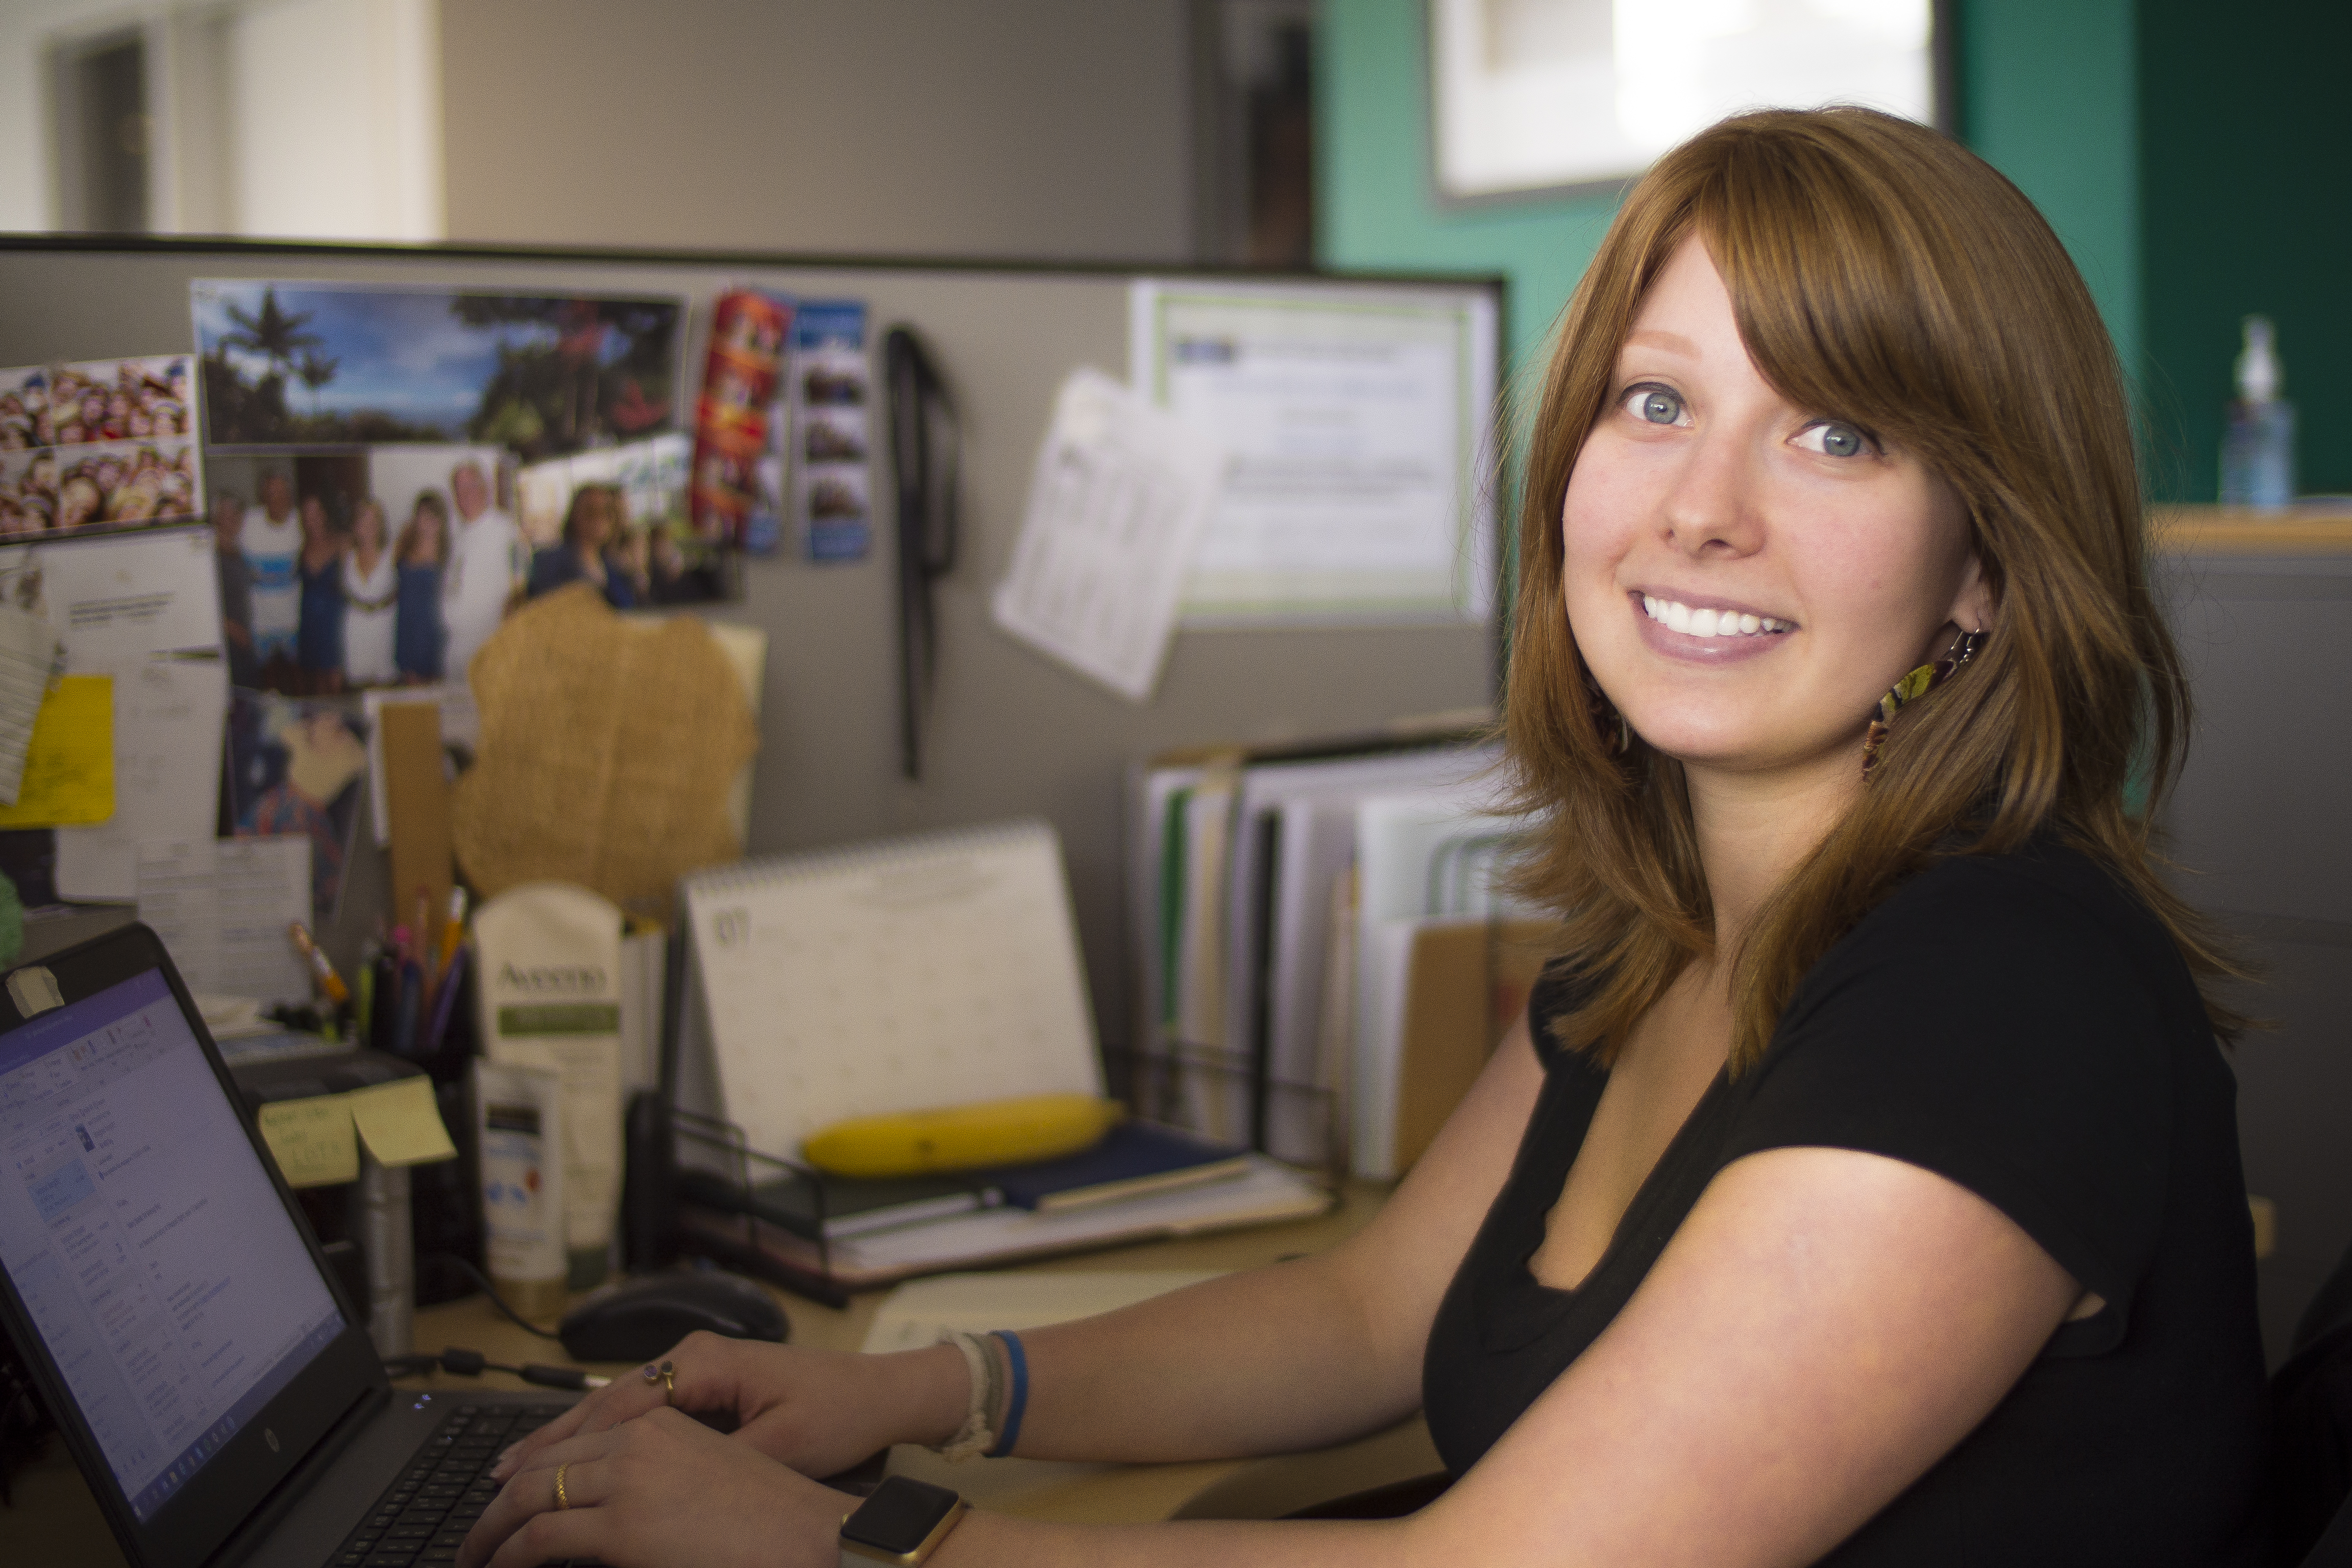 Woman sitting at cubicle desk